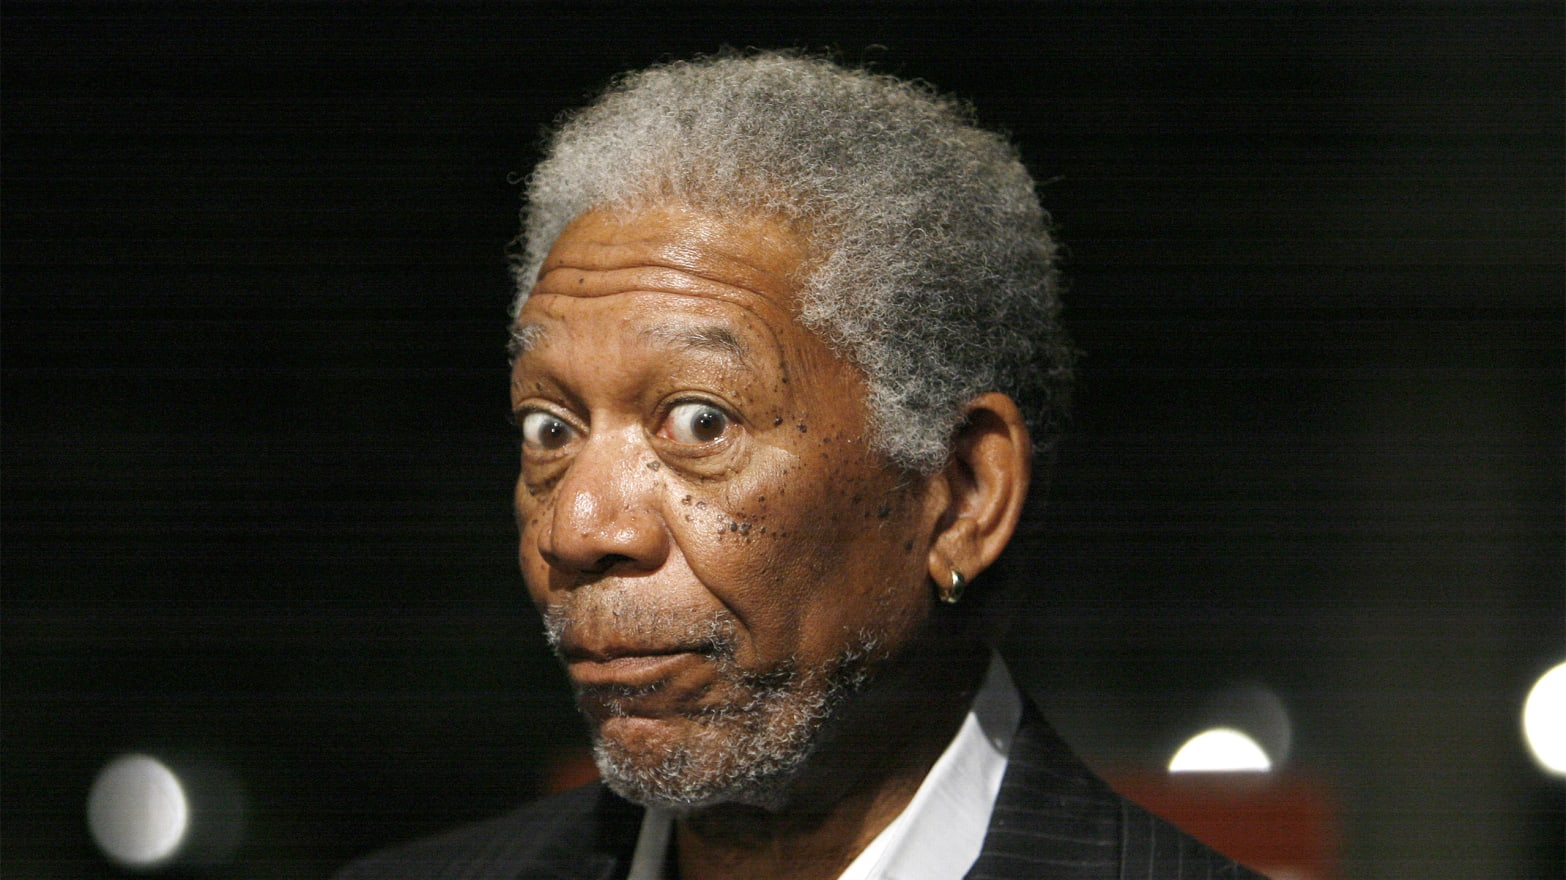 Morgan Freeman Shoots Straight: On Legalizing Marijuana and